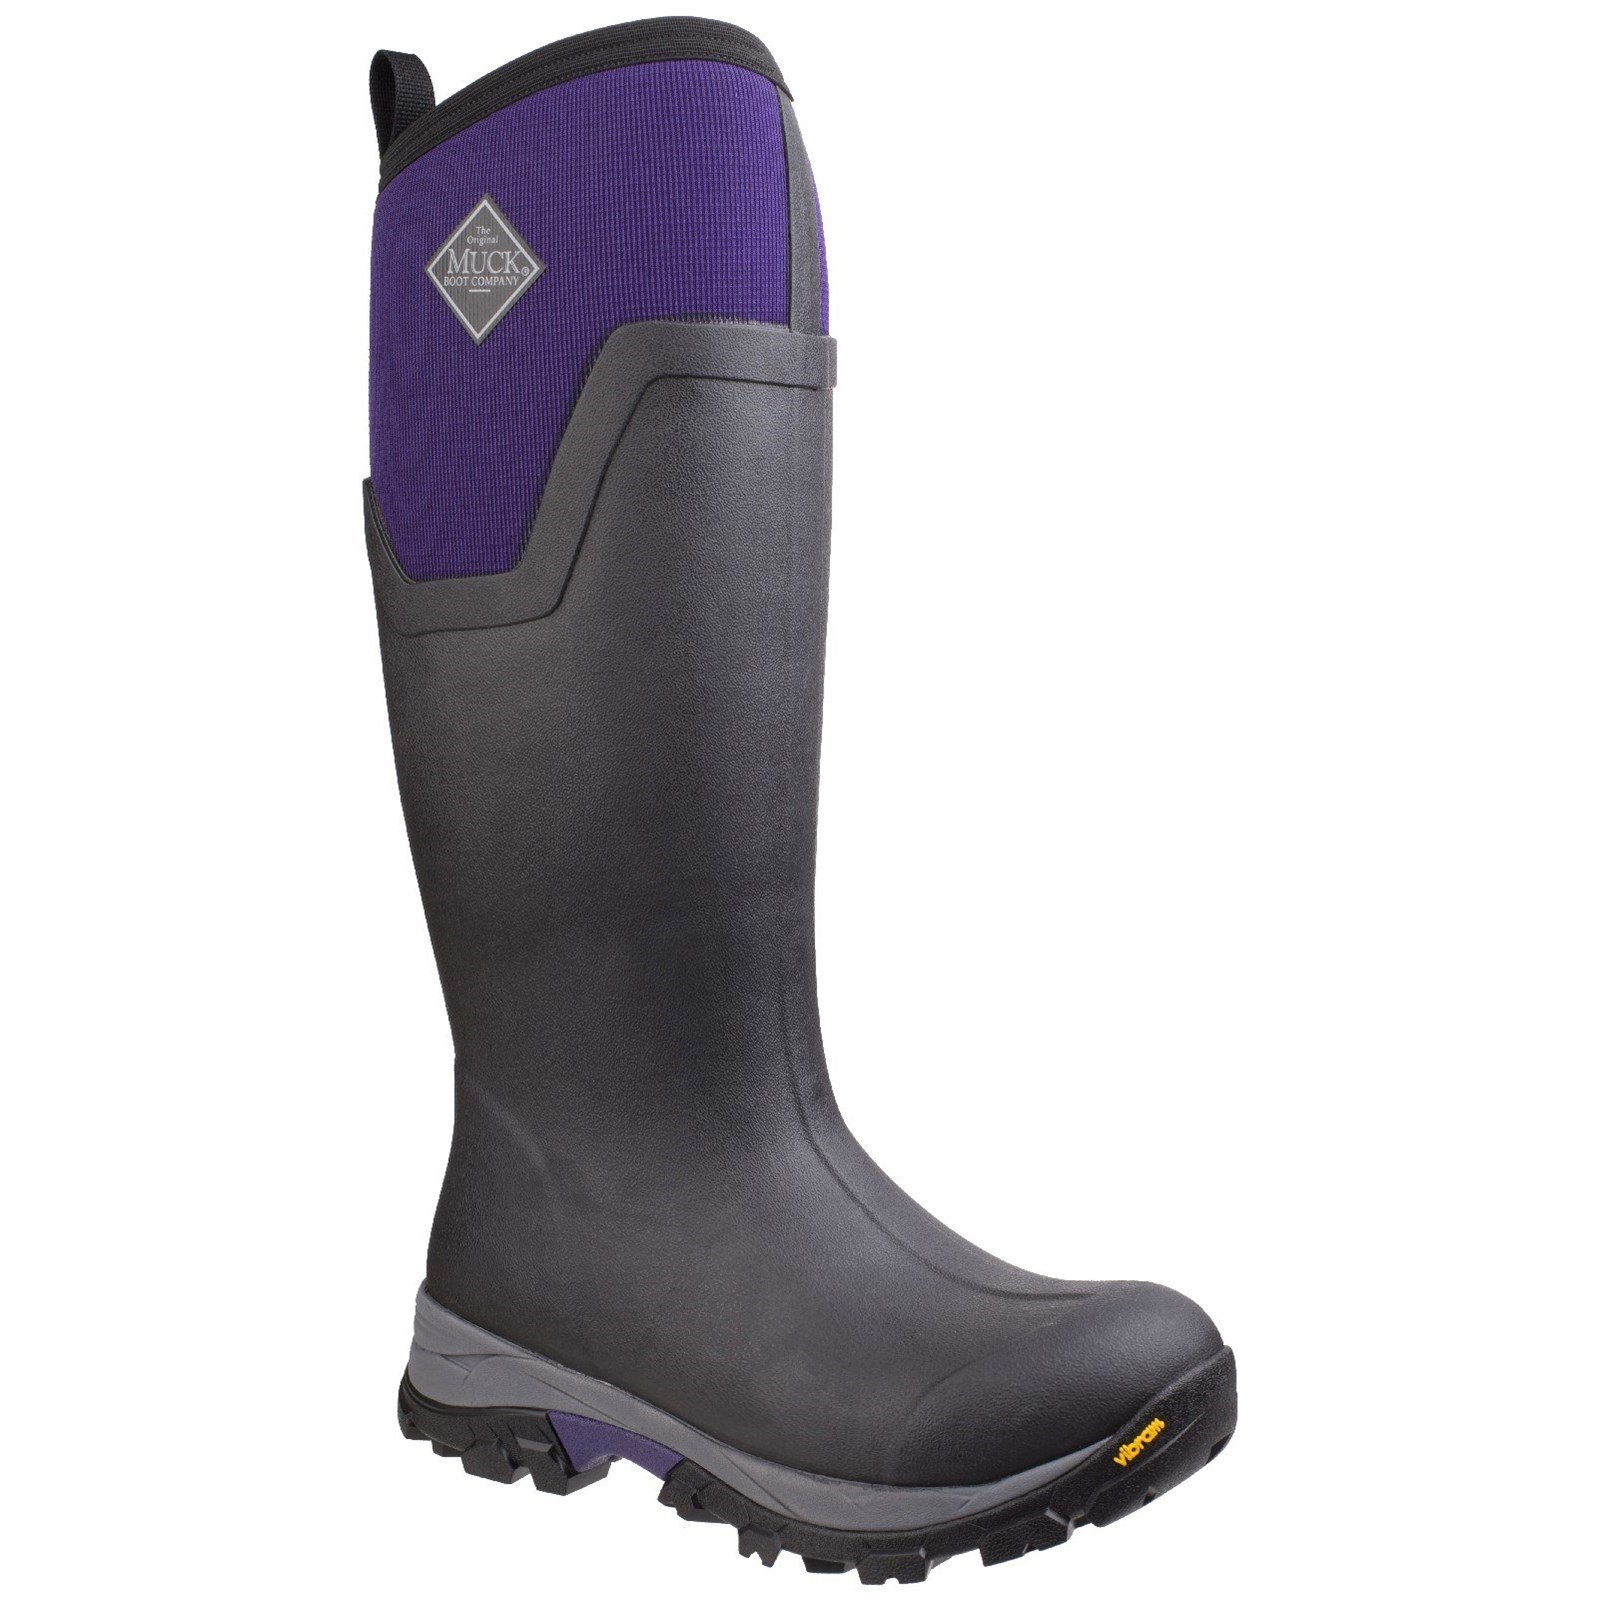 Muck Boot Womens/Ladies Arctic Ice Tall Extreme Condition Rain Boots (9 US, Black/Parachute Purple) by Muck Boot